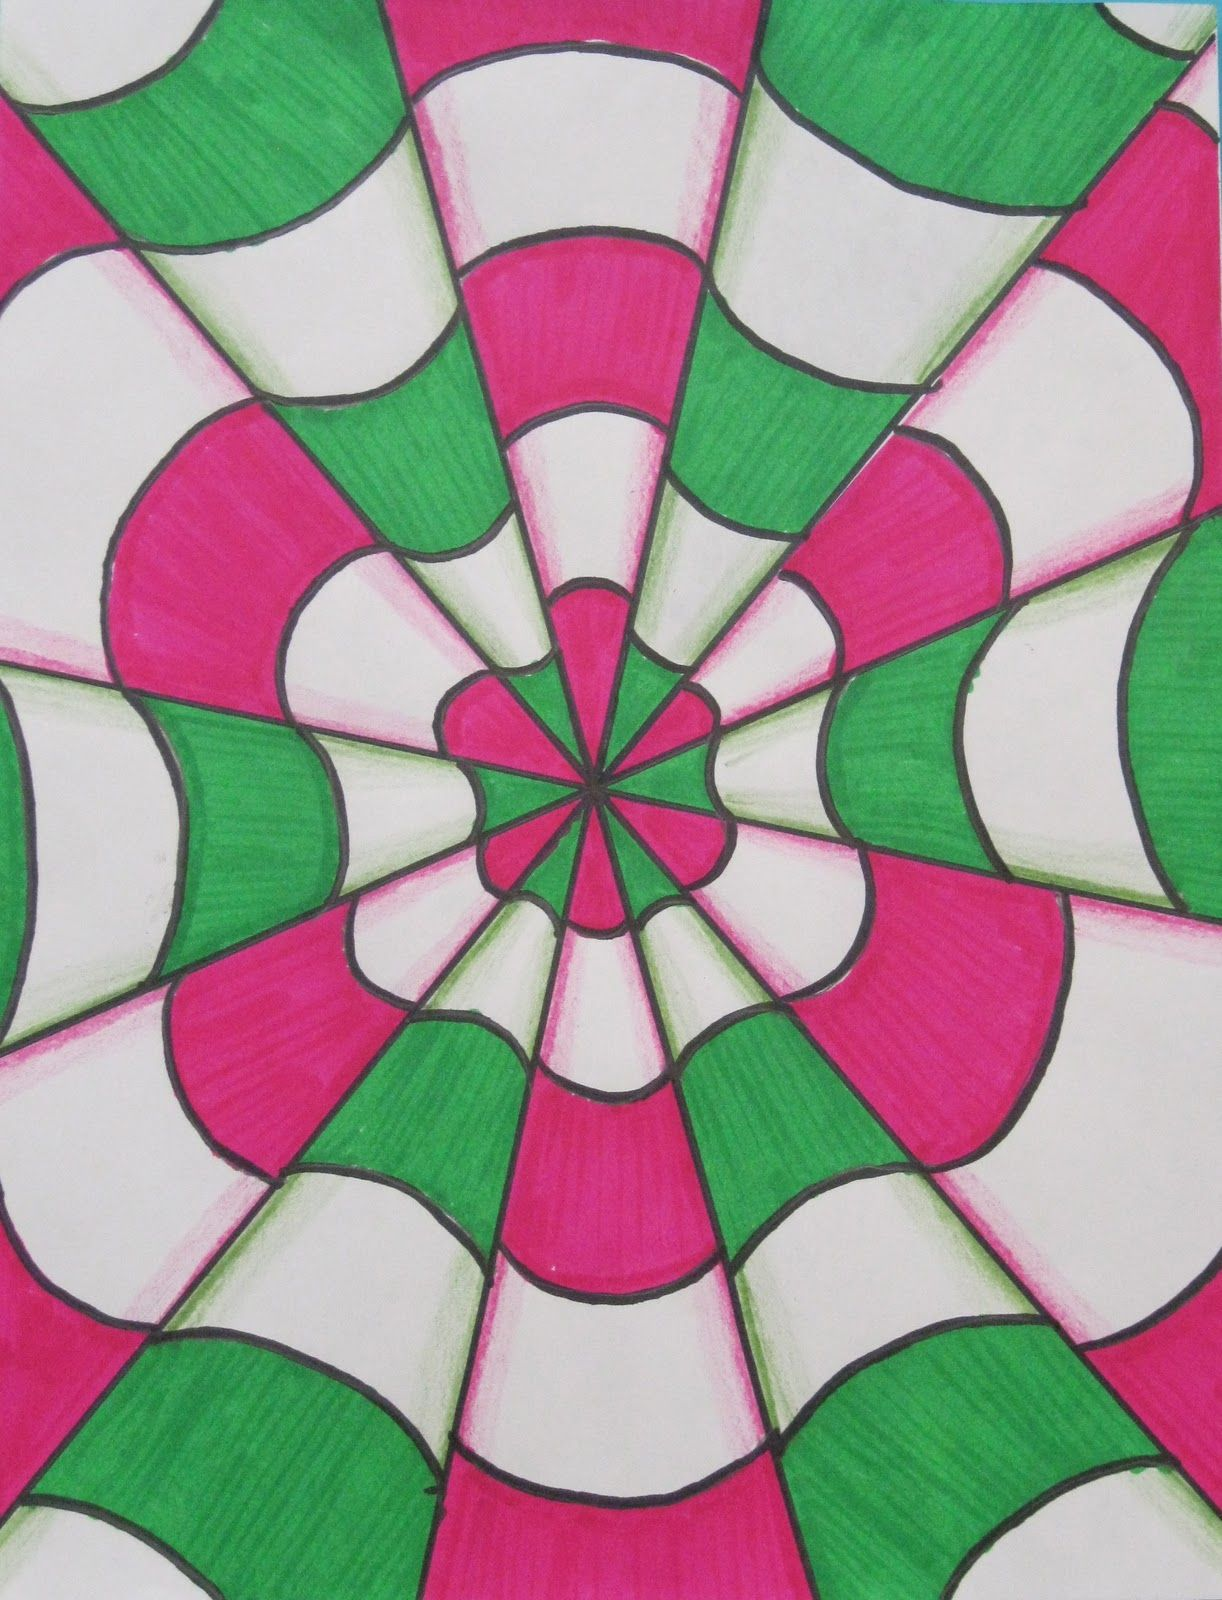 Optical Illusions in Art Class | art | Pinterest | Illusions ...